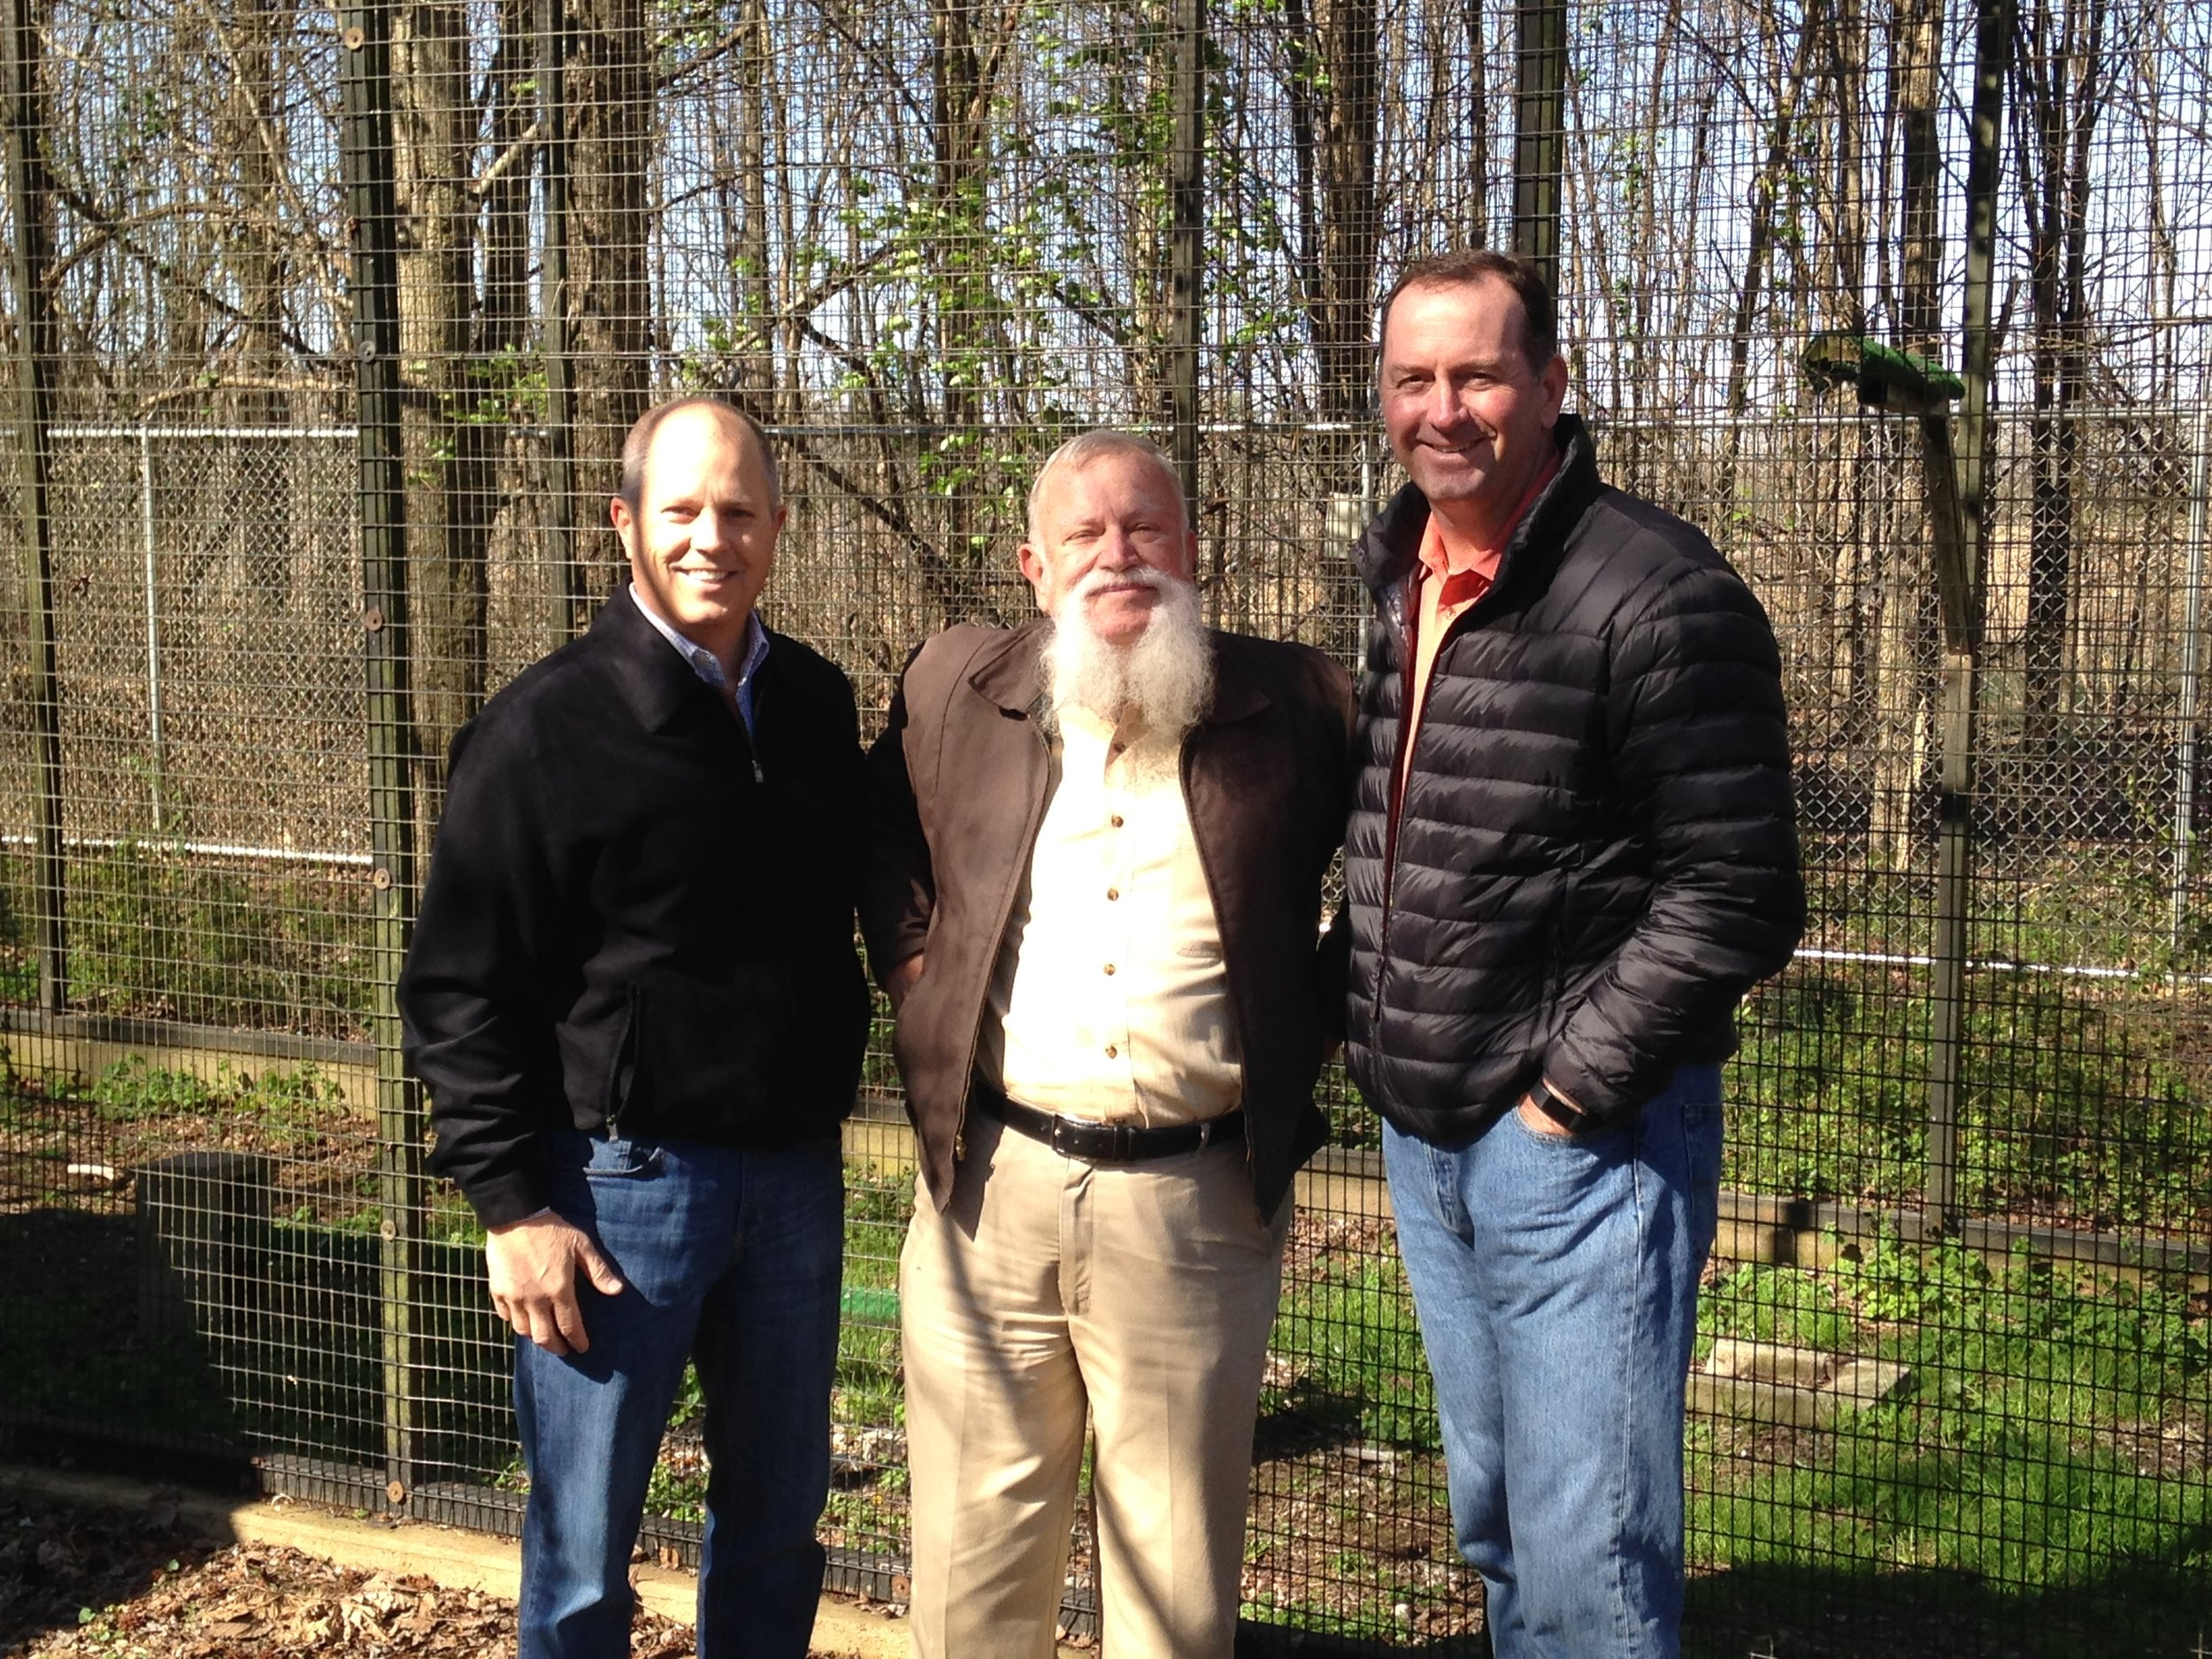 Jeff Homad of the MCVB, Dr. Knox Martin, and Shelby County Trustee David Lenoir taking a tour.